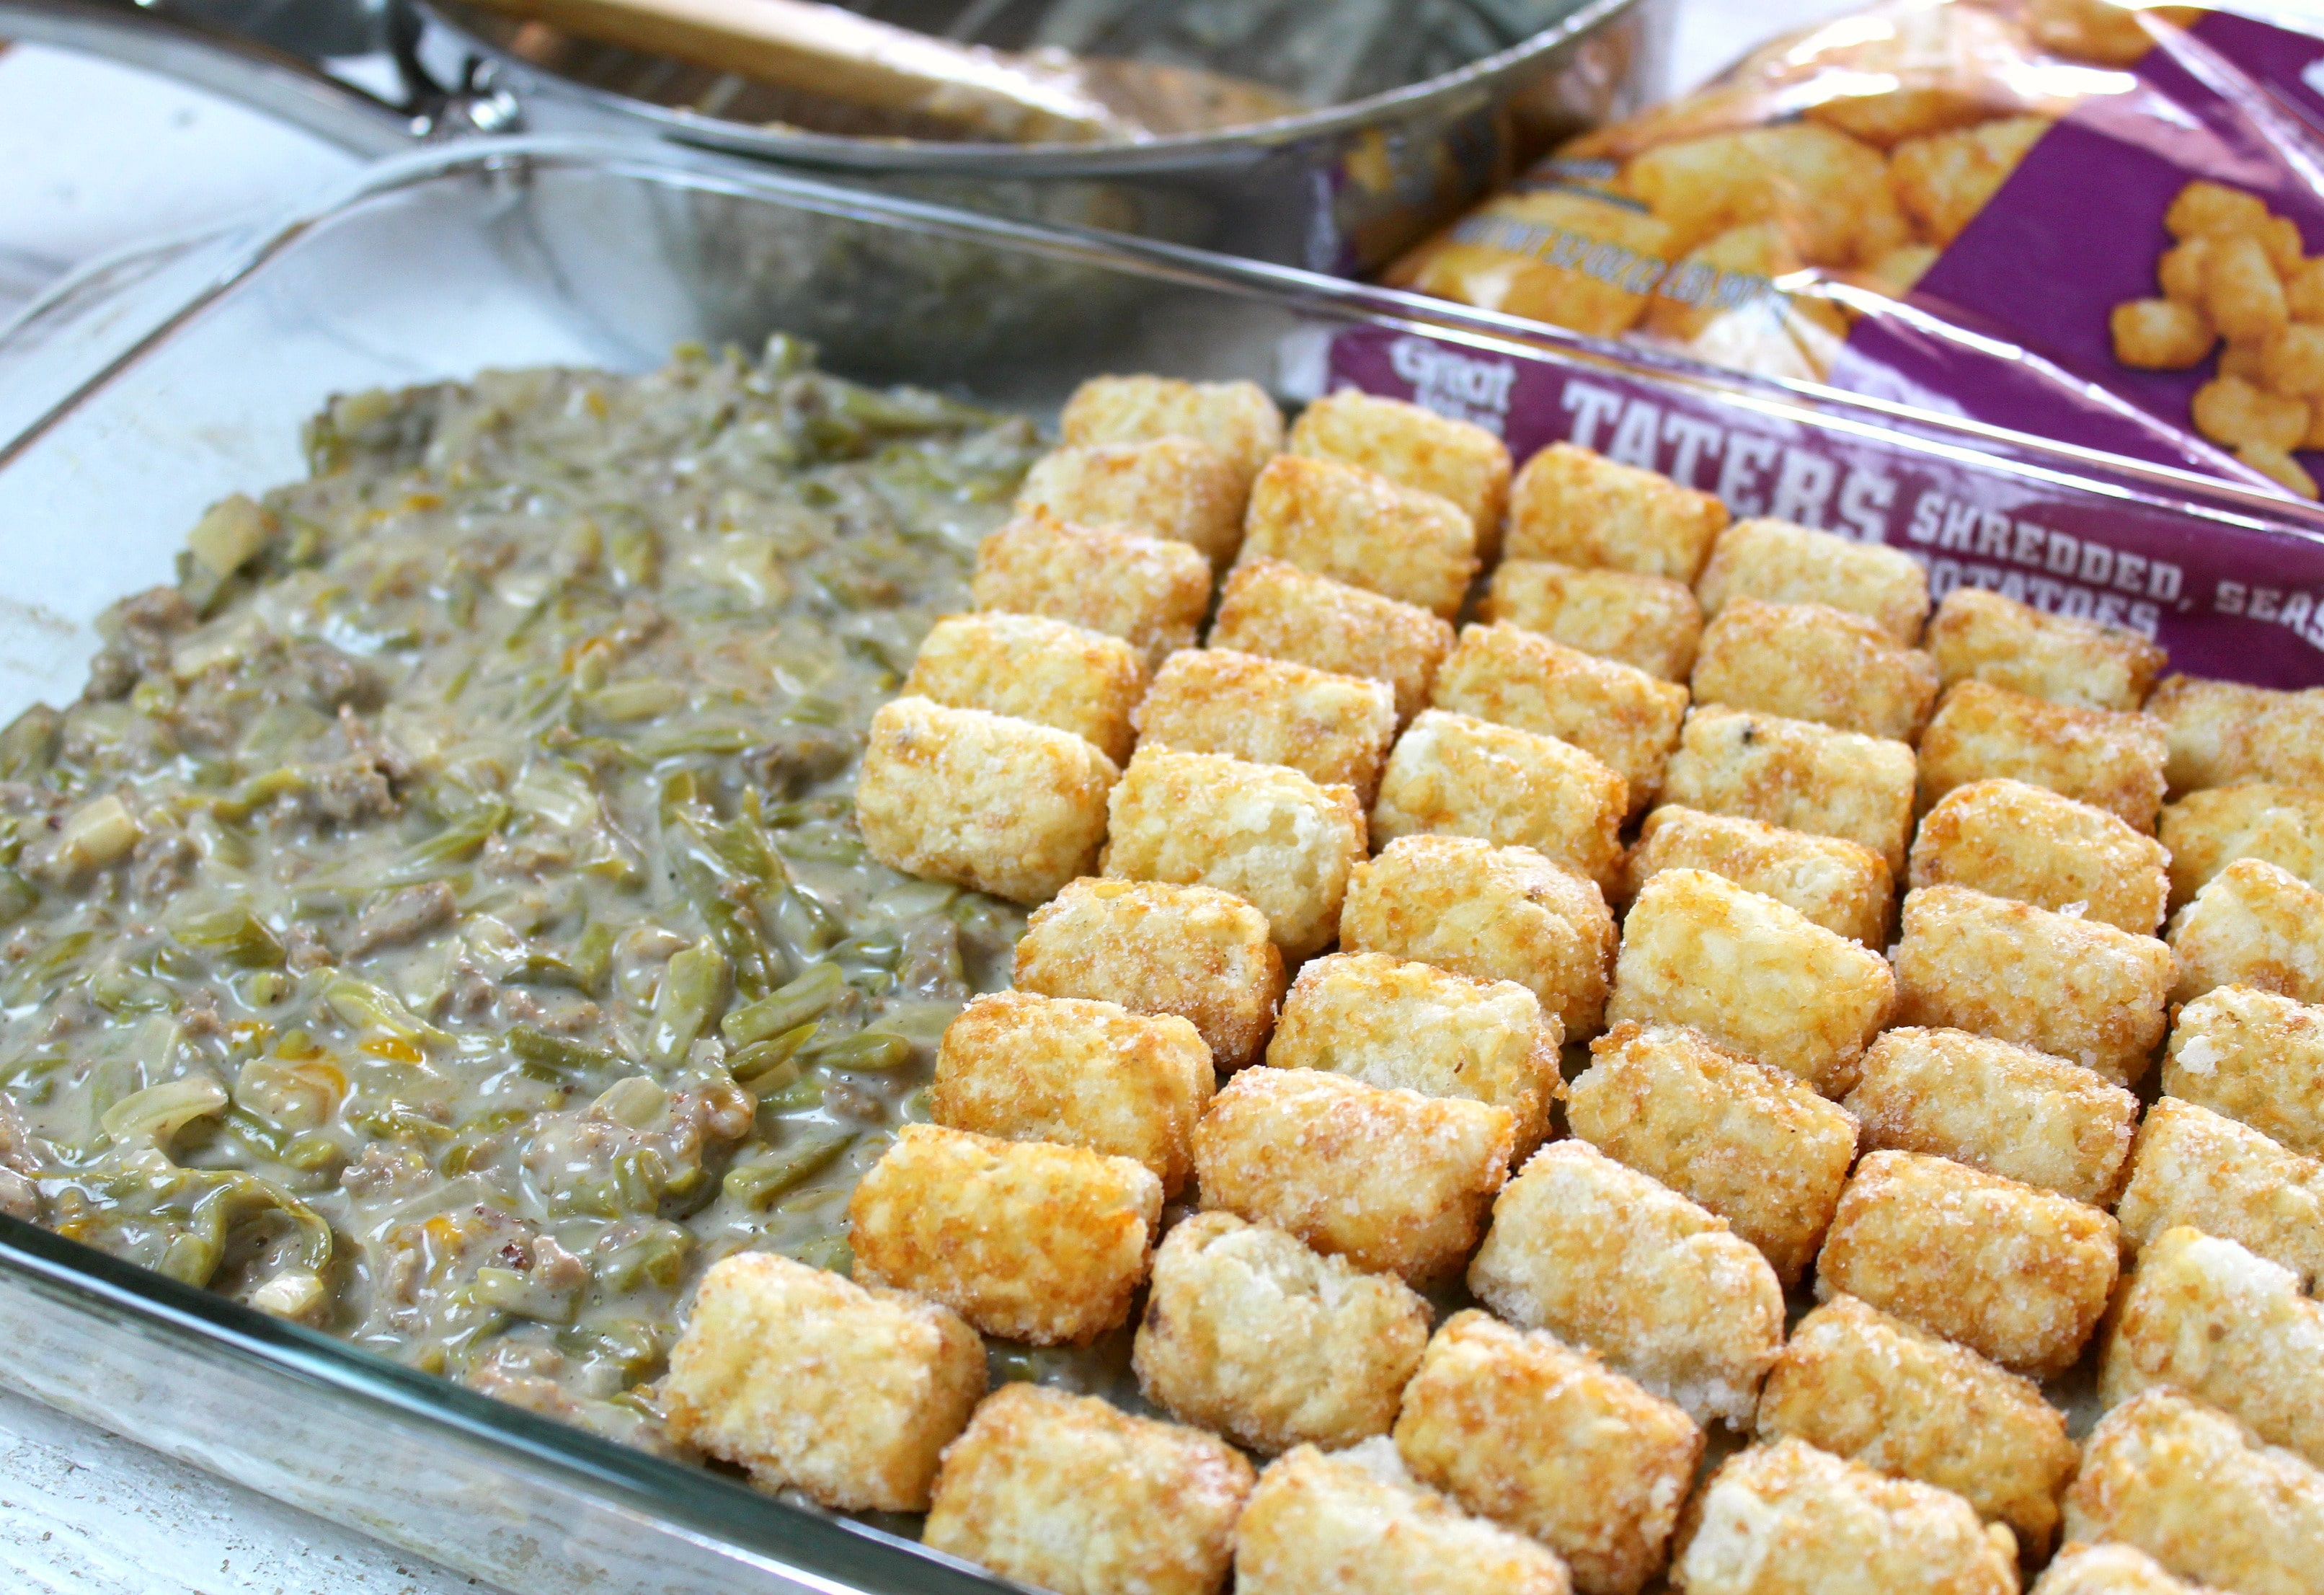 Tater Tot Casserole | Pour mixture into the 9x13 pan and top with a layer of frozen tater tots.